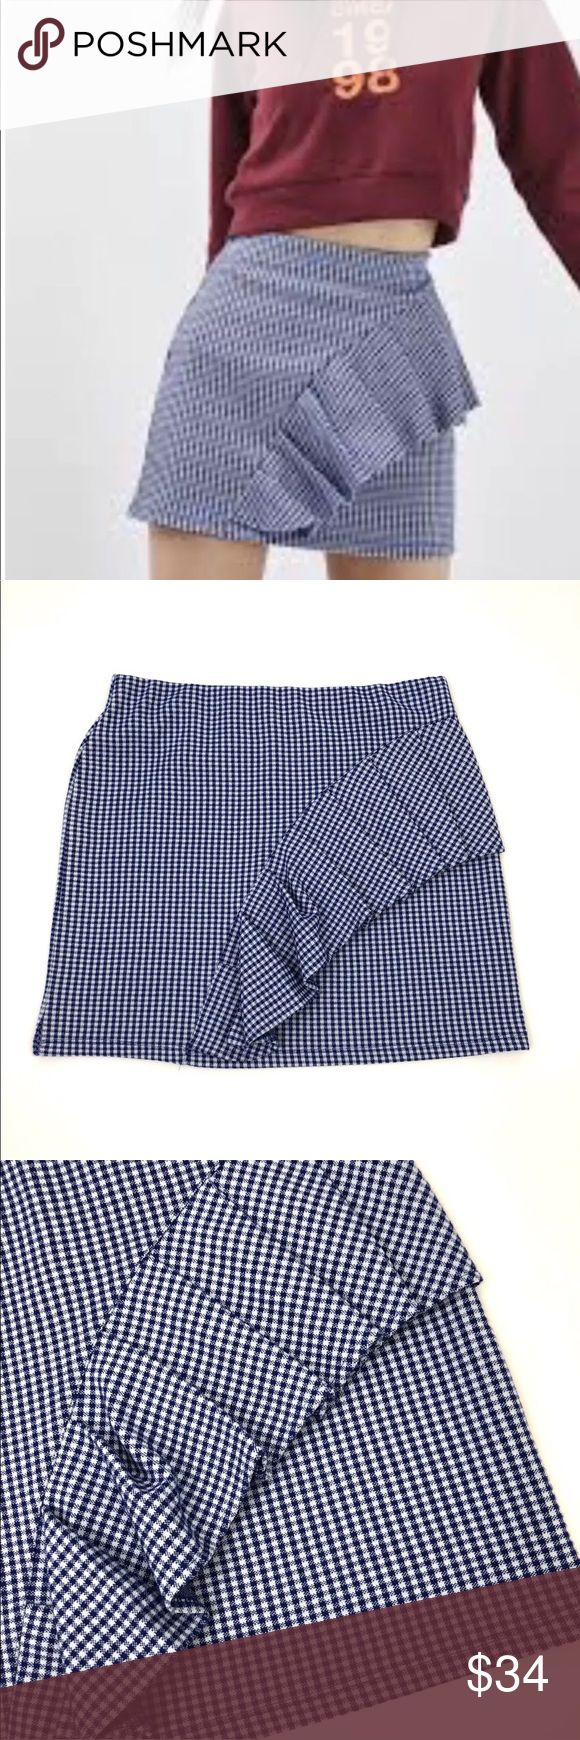 """NWT Topshop Blue Gingham Ruffle Jersey Mini Skirt Topshop Blue Gingham Ruffle Jersey Mini Skirt   Women's Size 8  Waist: 15""""  Length: 17""""  Condition: New with tags. Topshop Skirts Mini"""